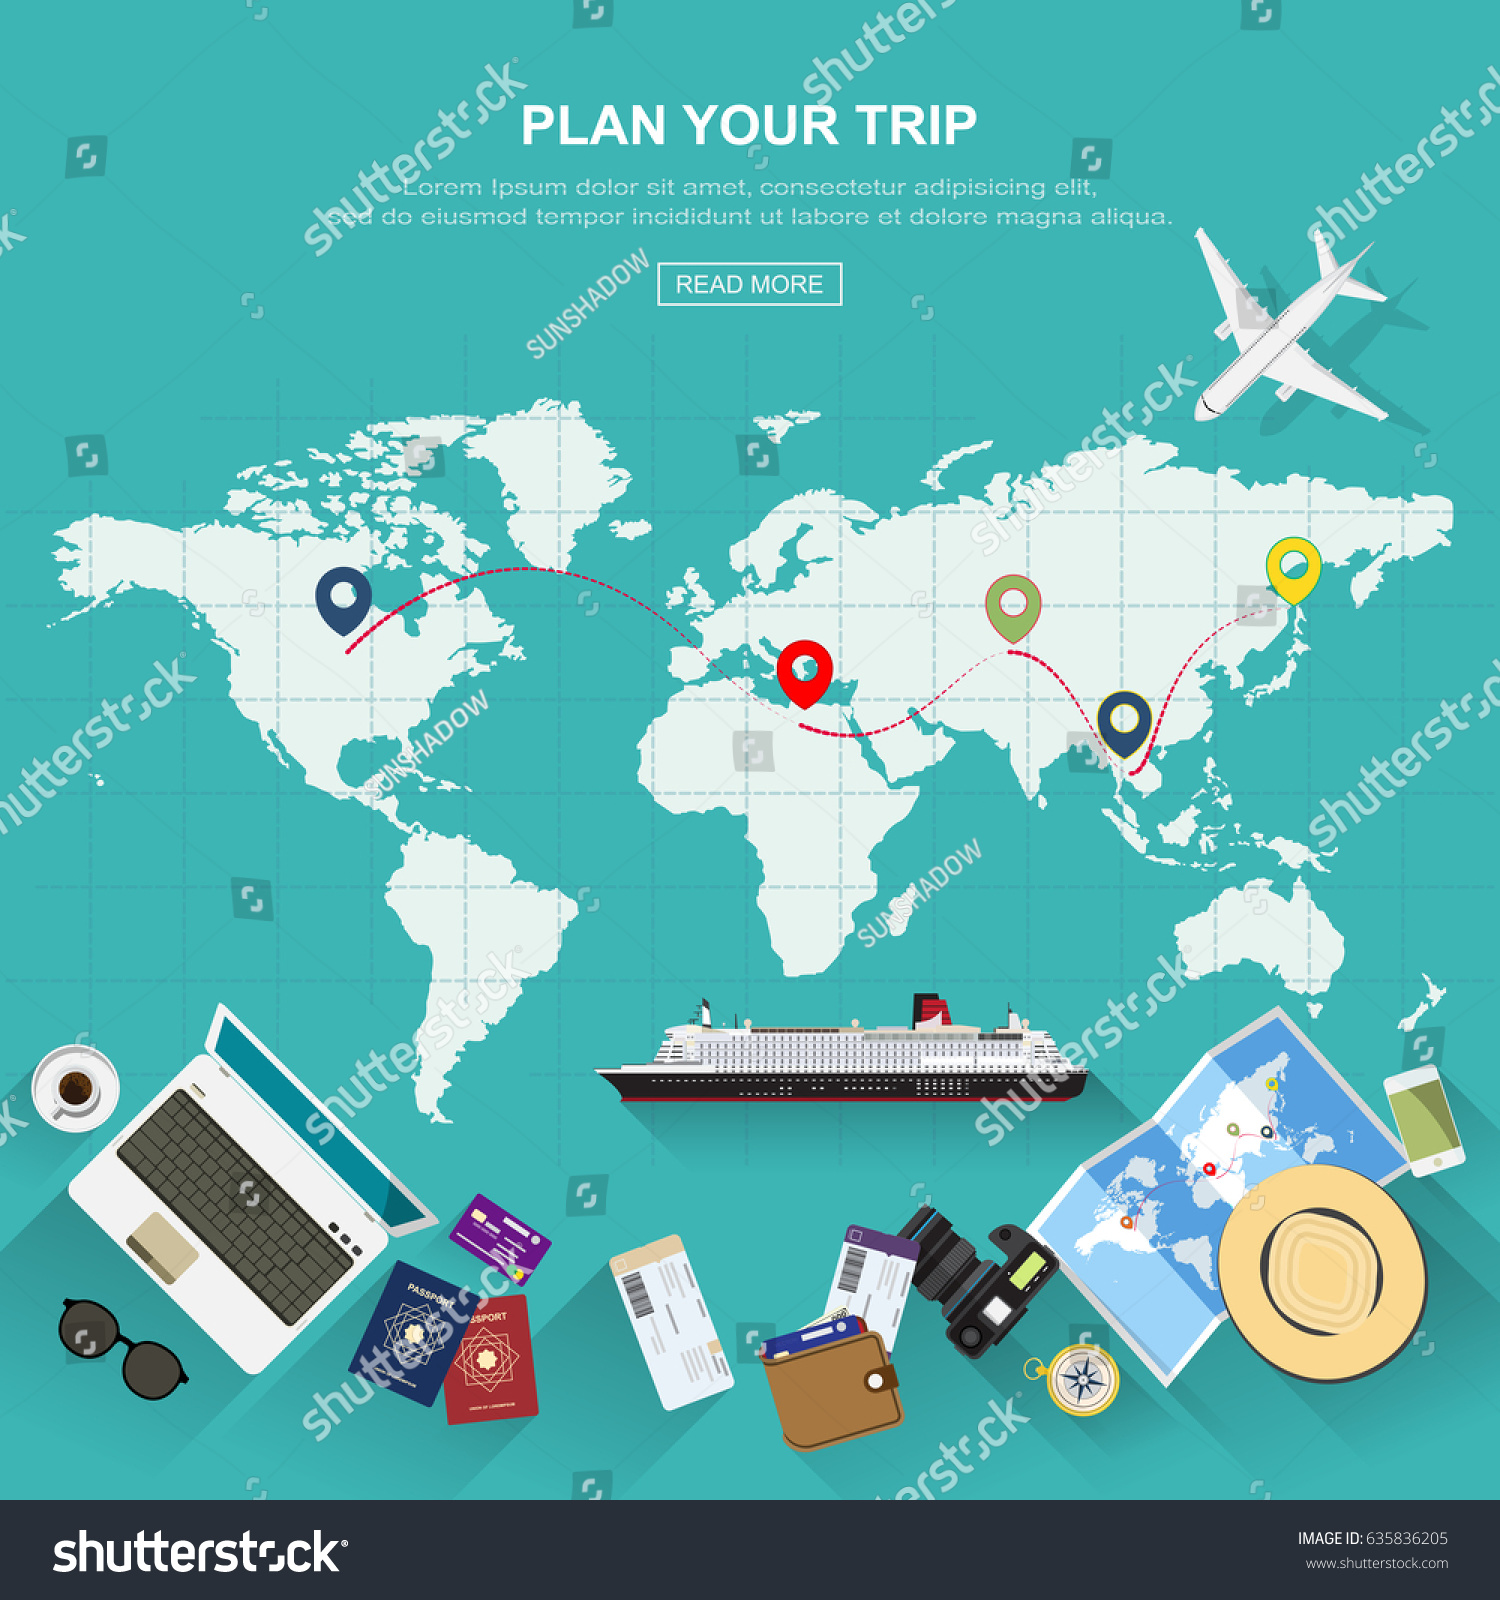 Banner Banner Design Ideas For Travel Planning Summer Vacation Booking  Online Travel Travel Summer Vacation.